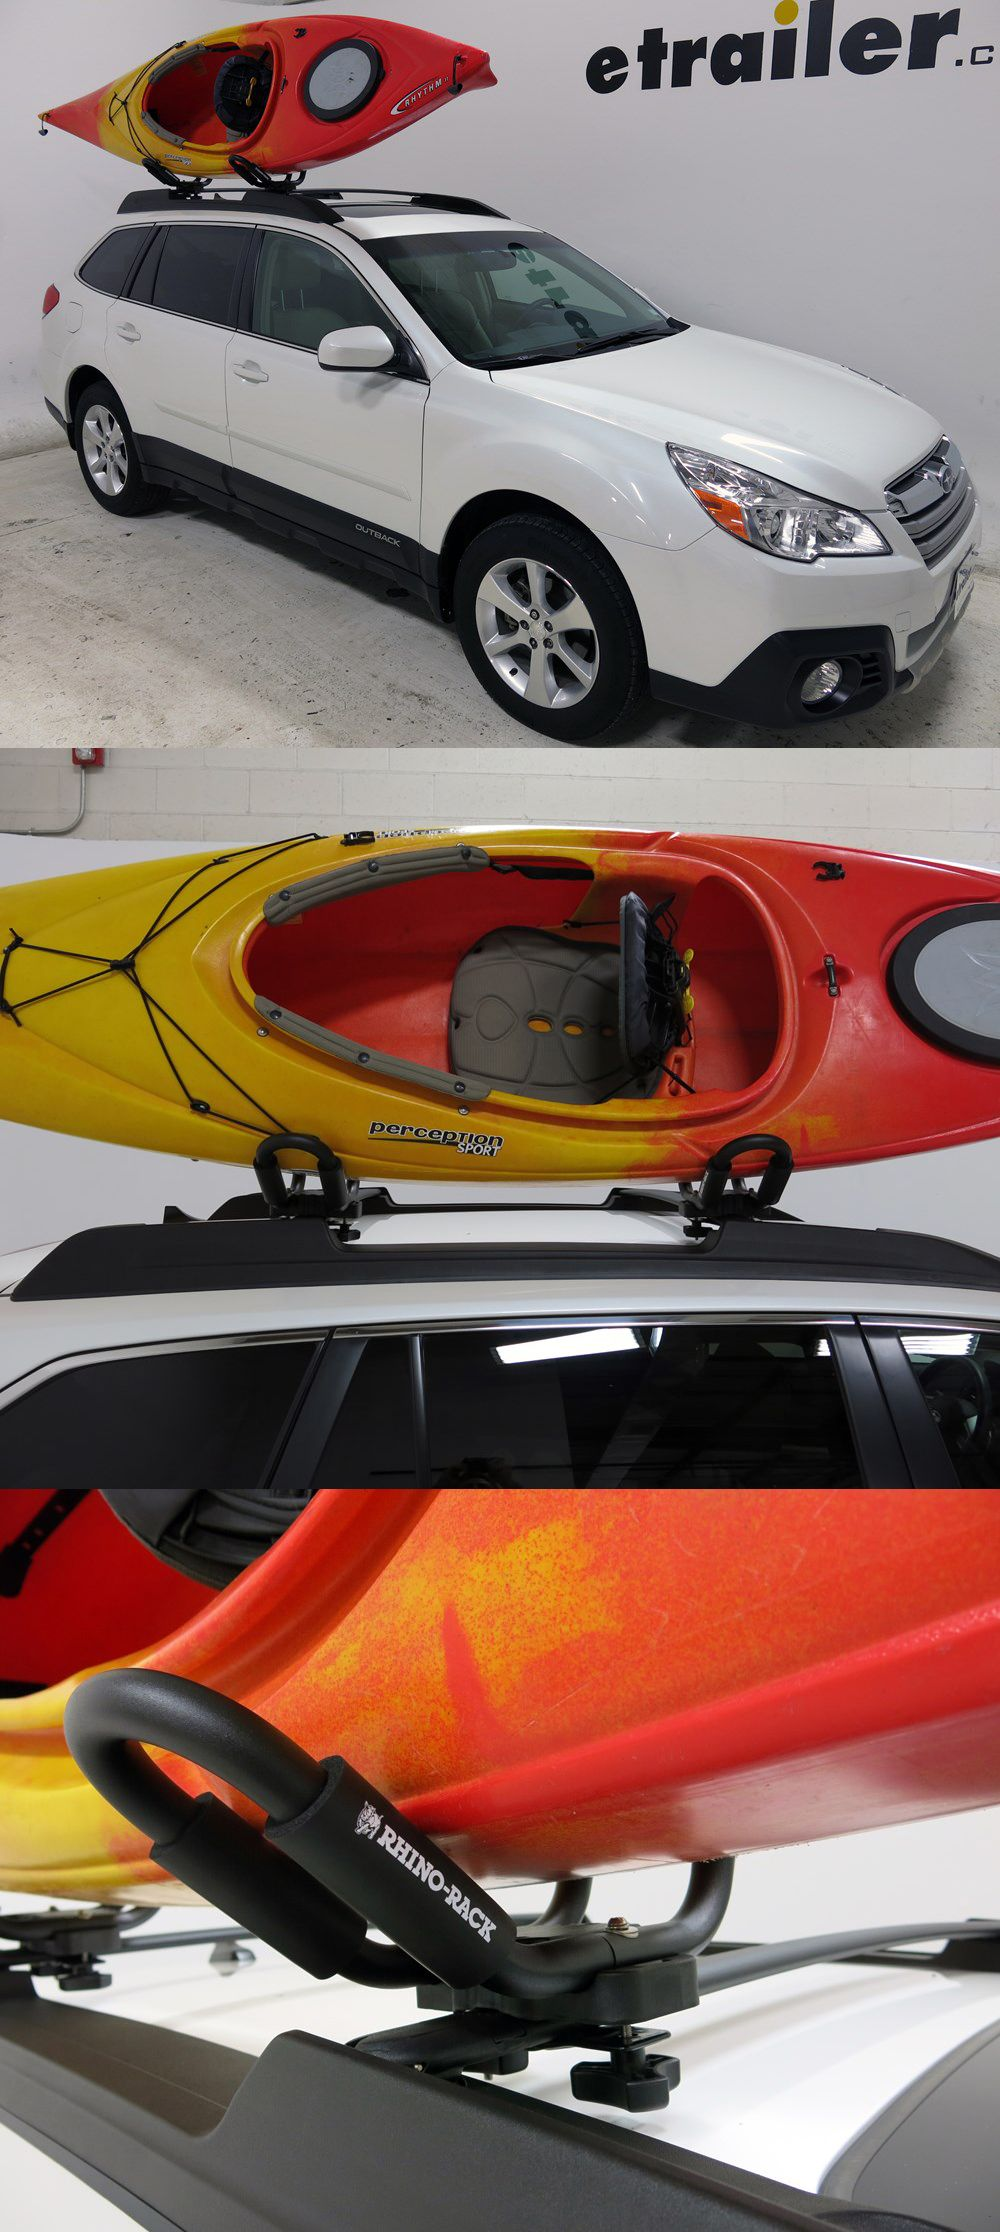 An Essential Vehicle Accessory For The Subaru Outback Wagon And Those Who  Love Kayaking! These